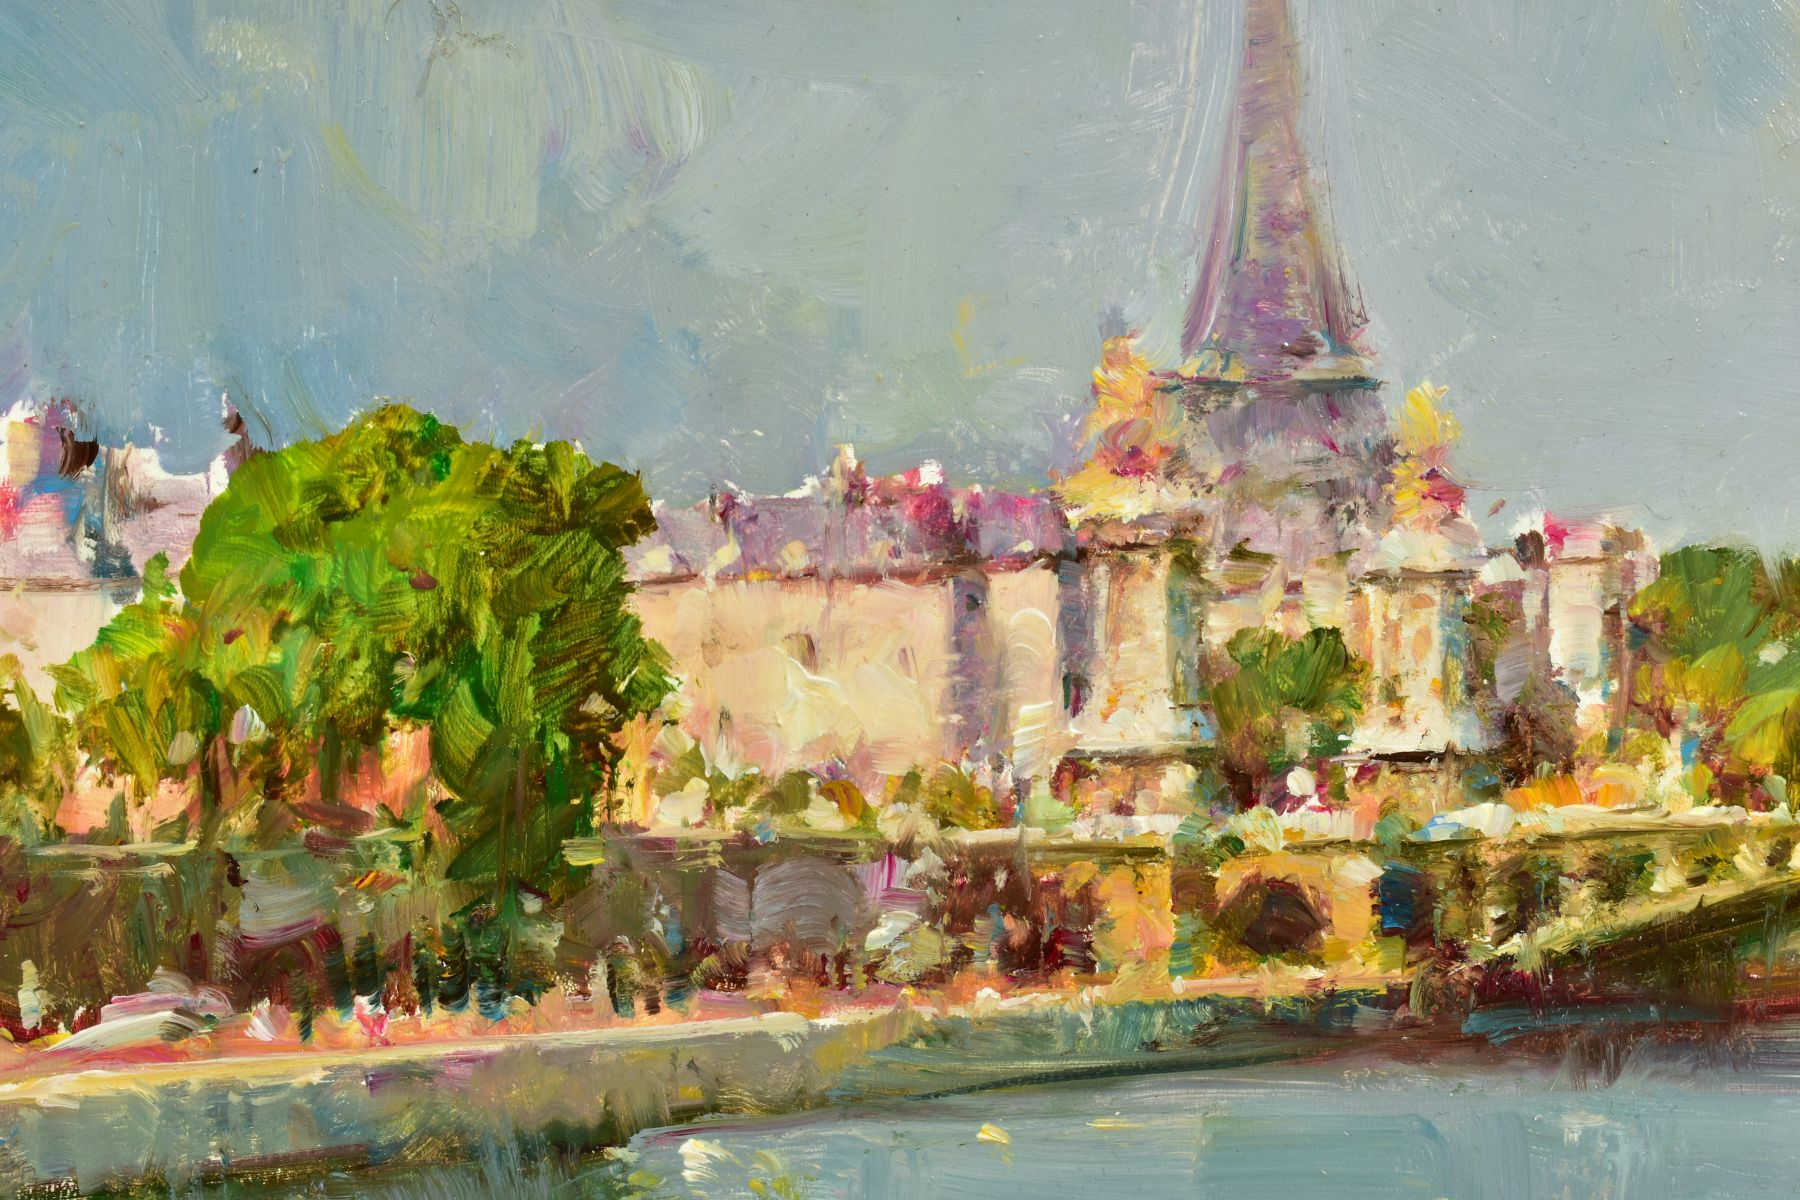 HELIOS GISBERT (SPANISH 1958), 'Parisian Summer', an impressionist view of Paris, signed bottom - Image 4 of 6